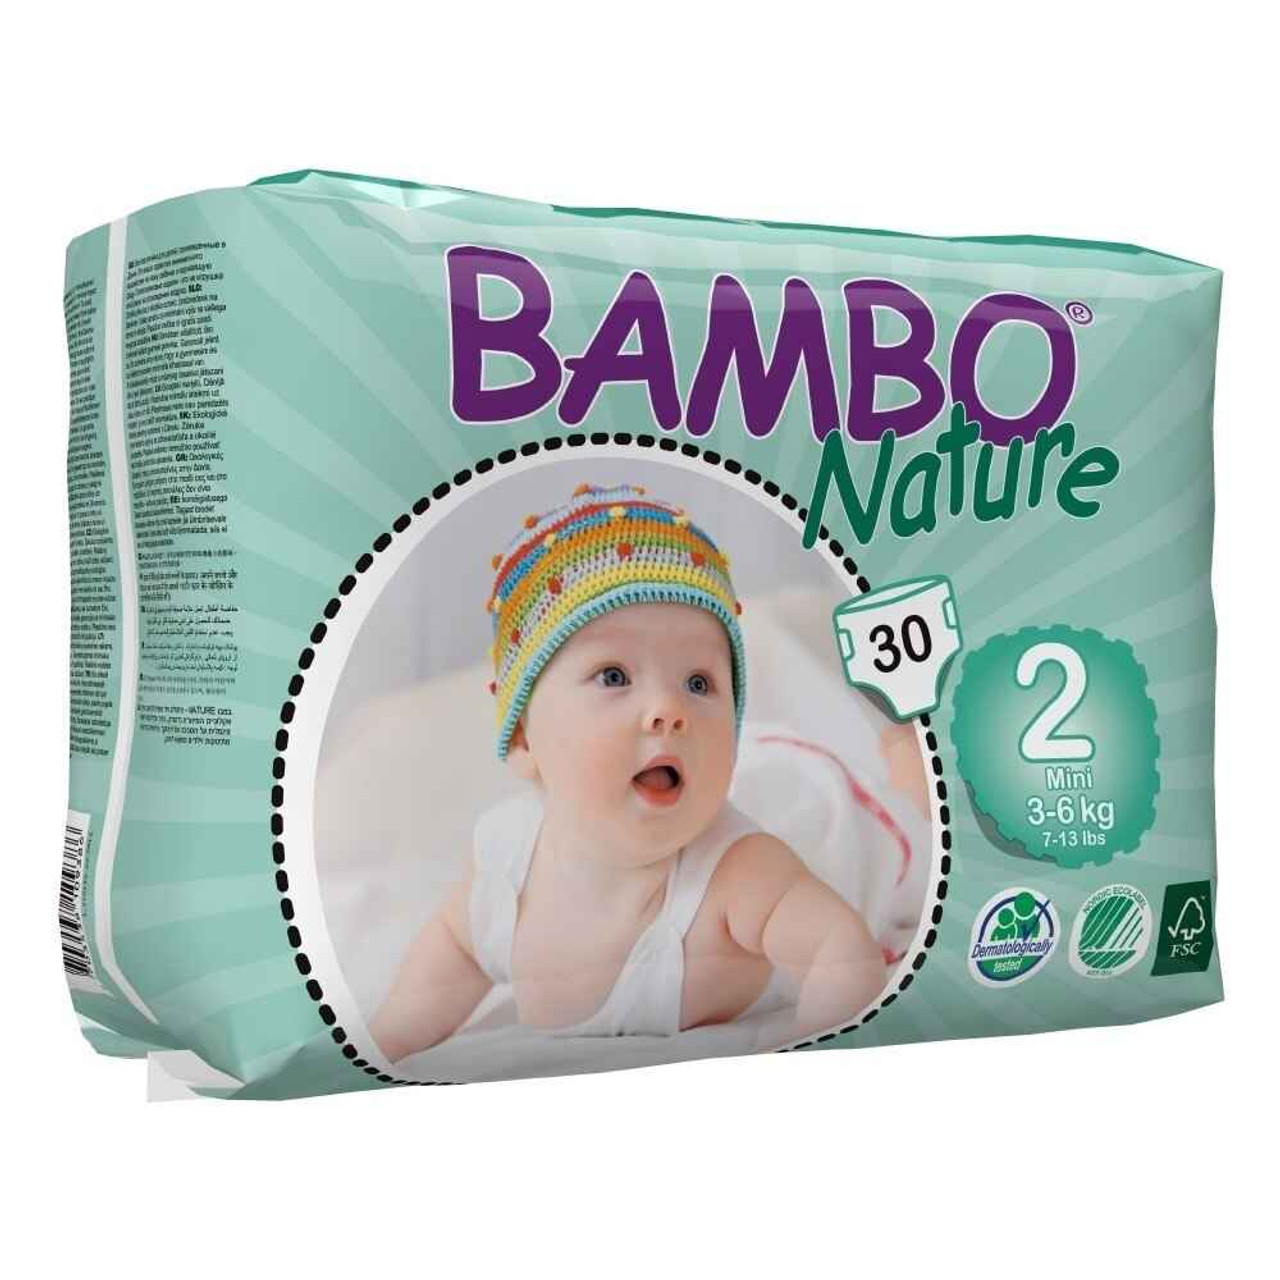 Bambo Nature nappies are absorbent